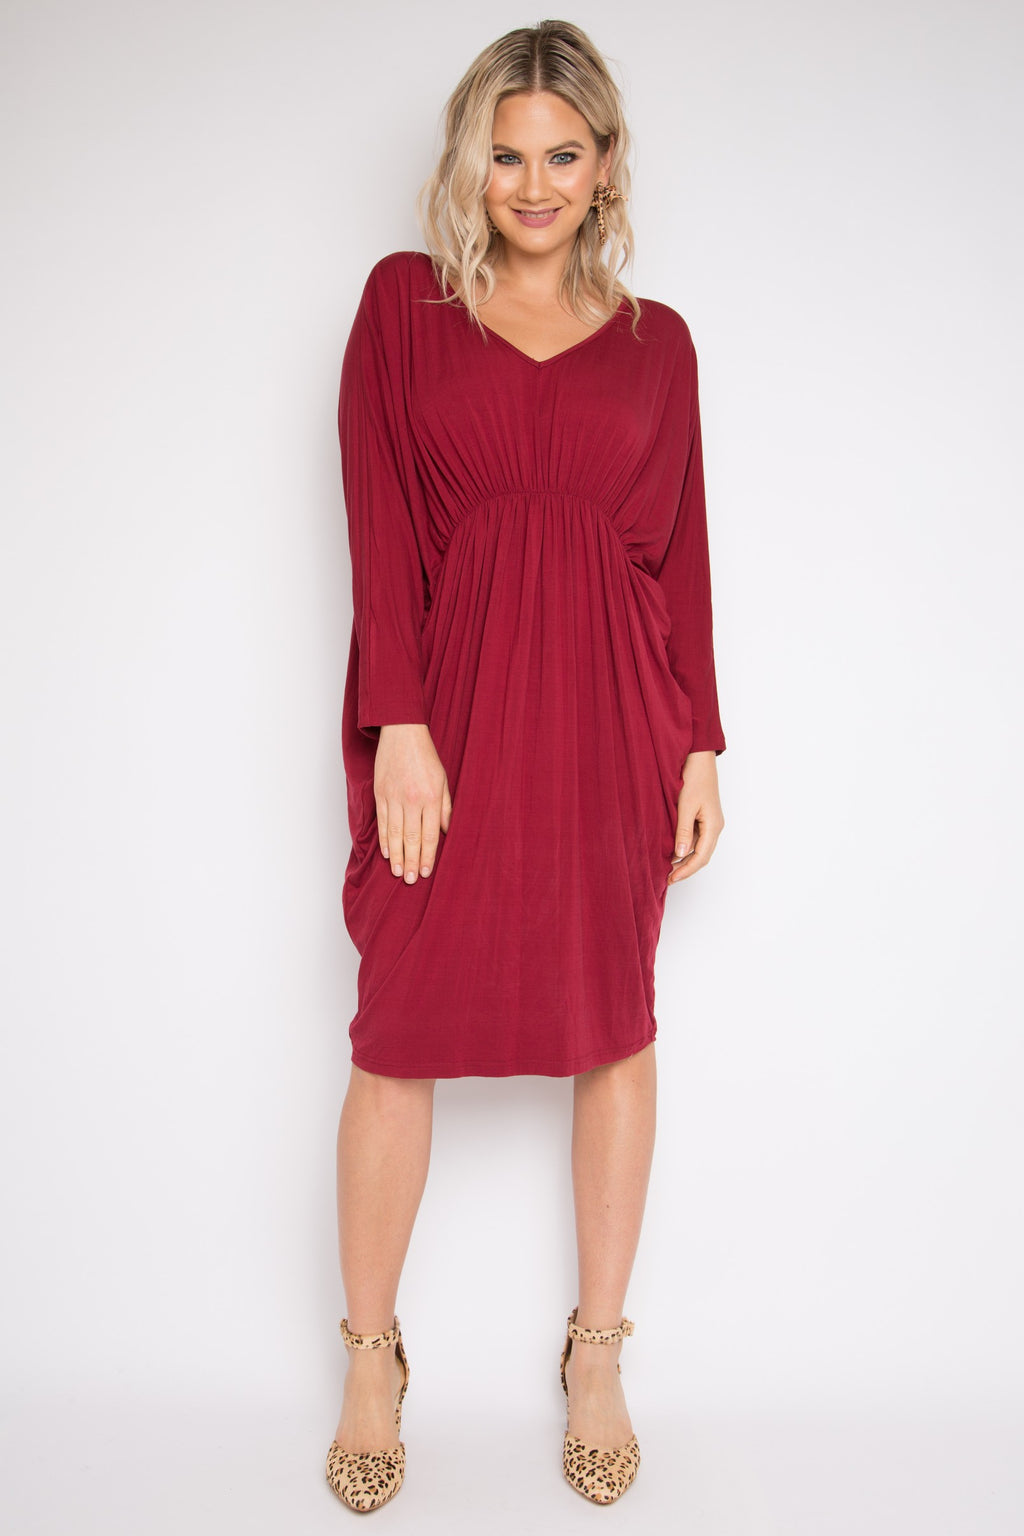 Bamboo Gathered Long Sleeve Miracle Dress in Black Cherry